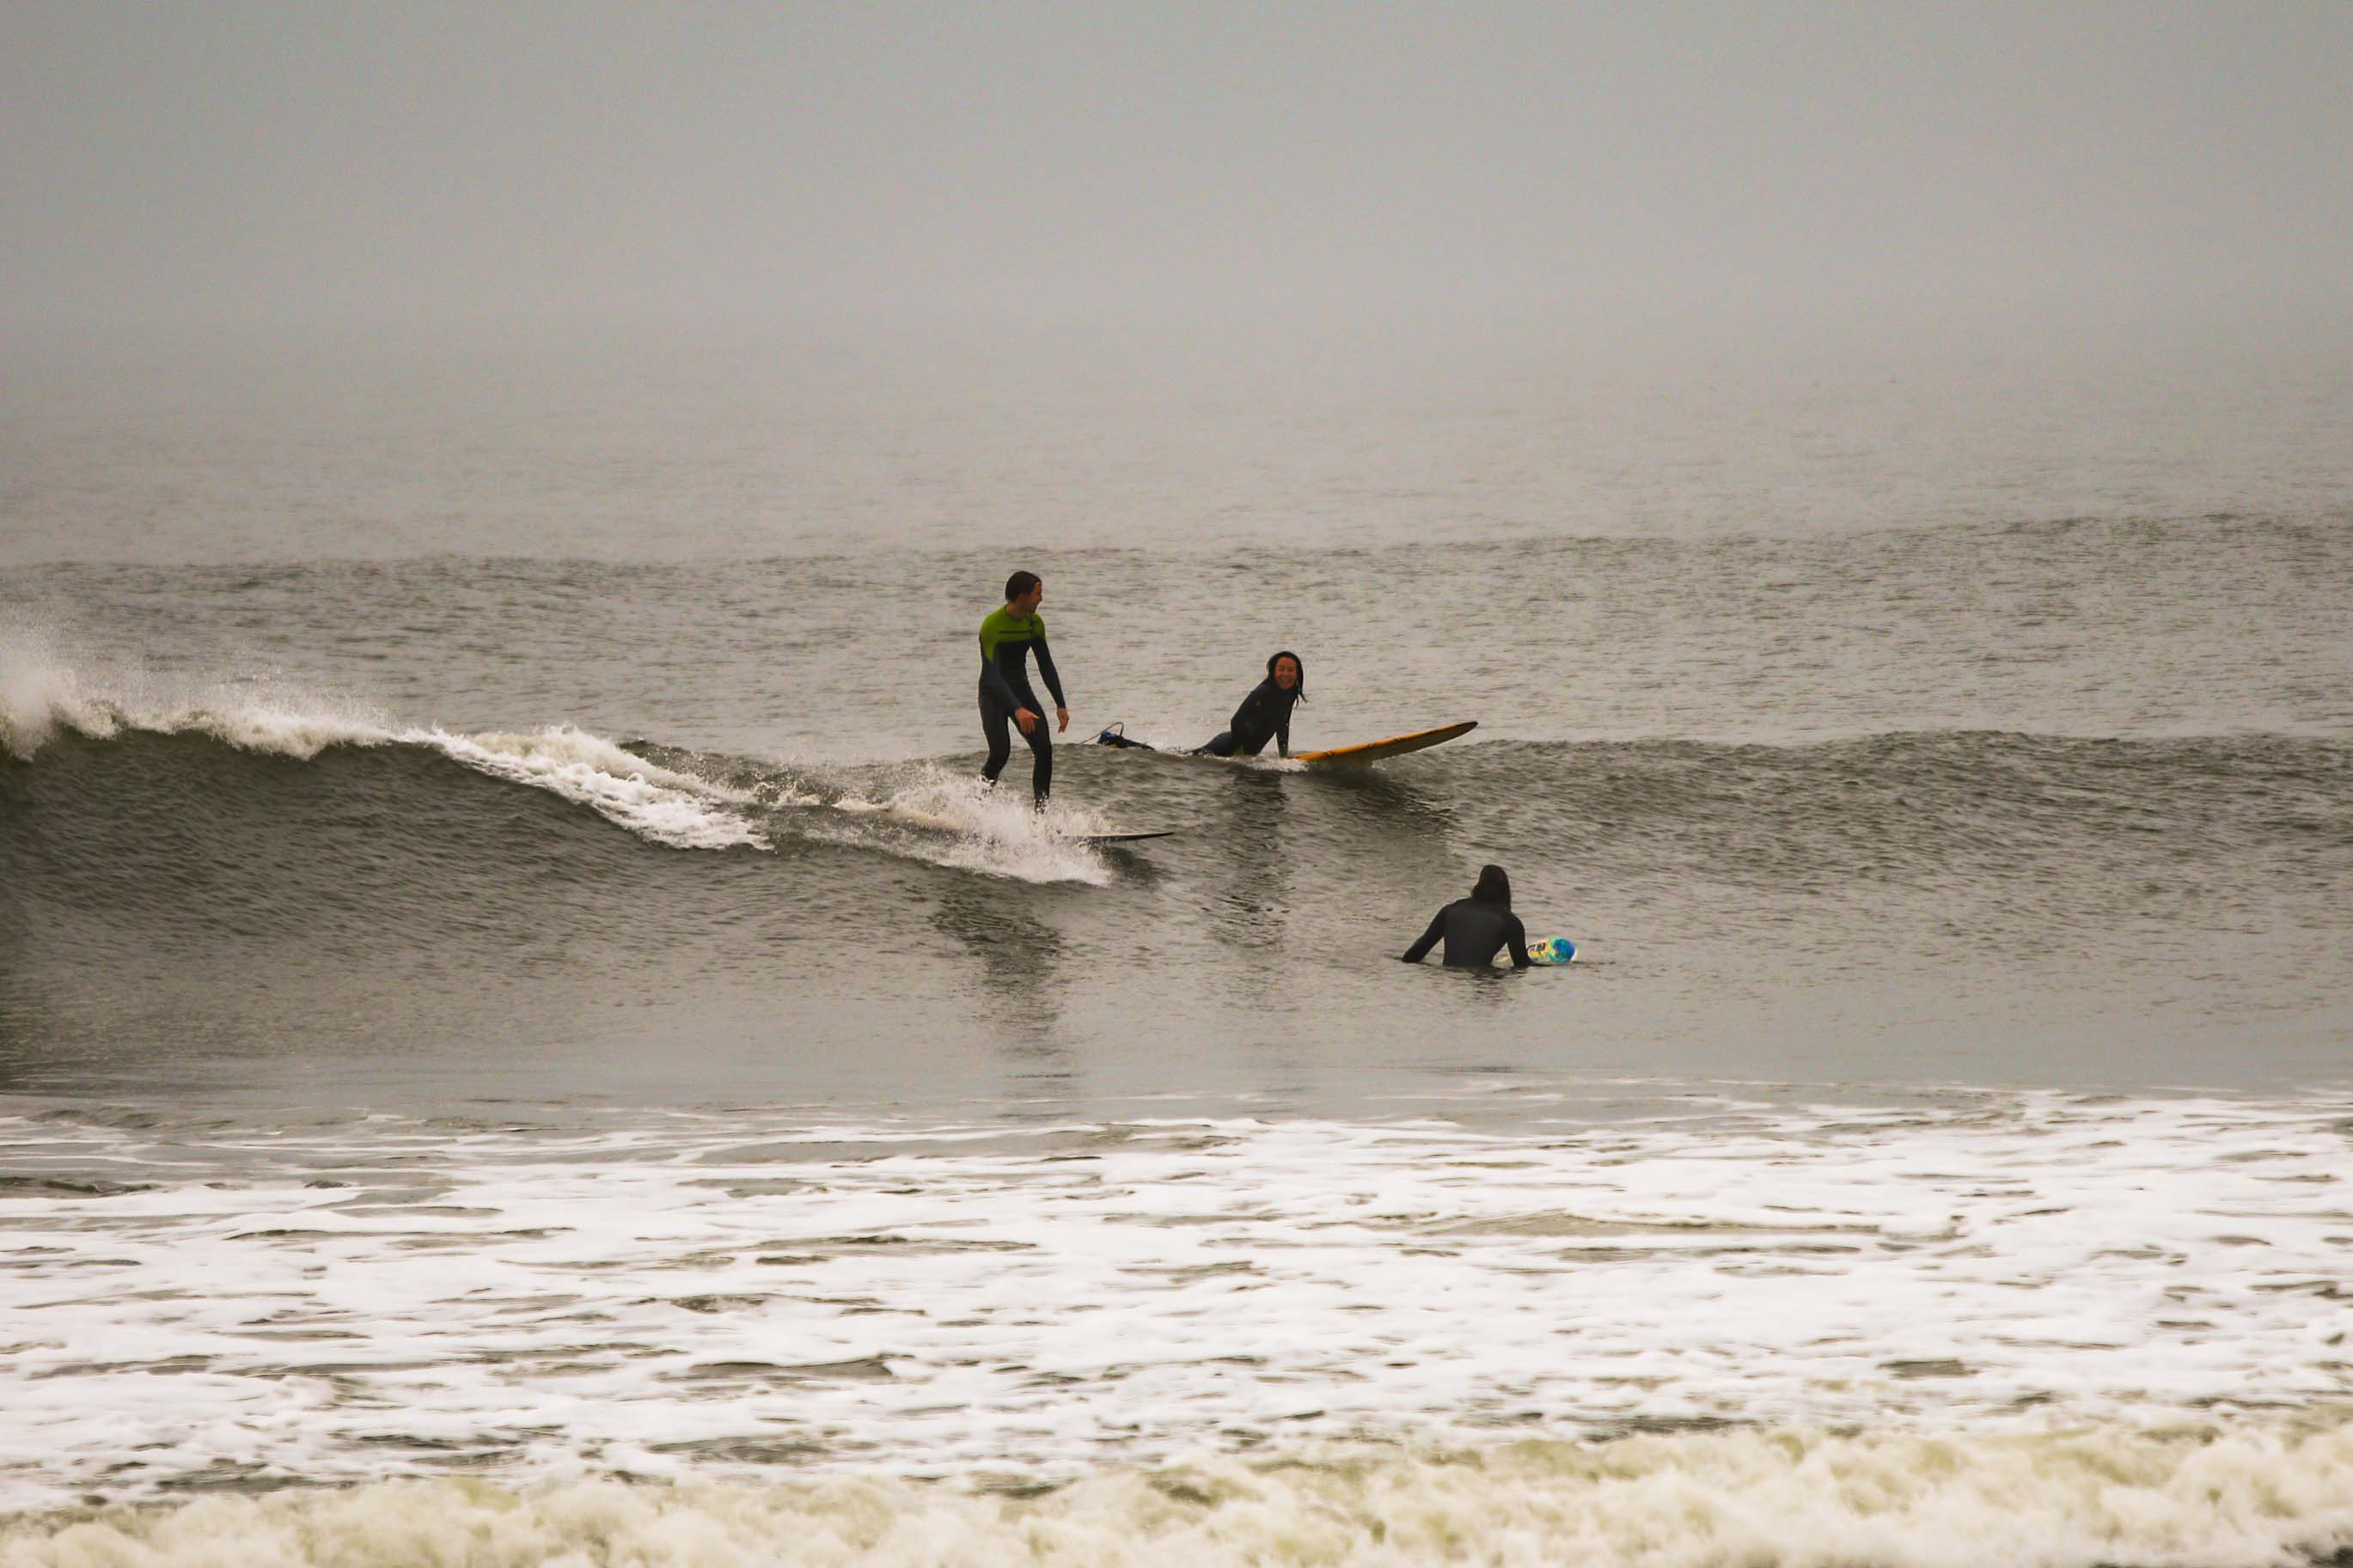 Family photo surfing